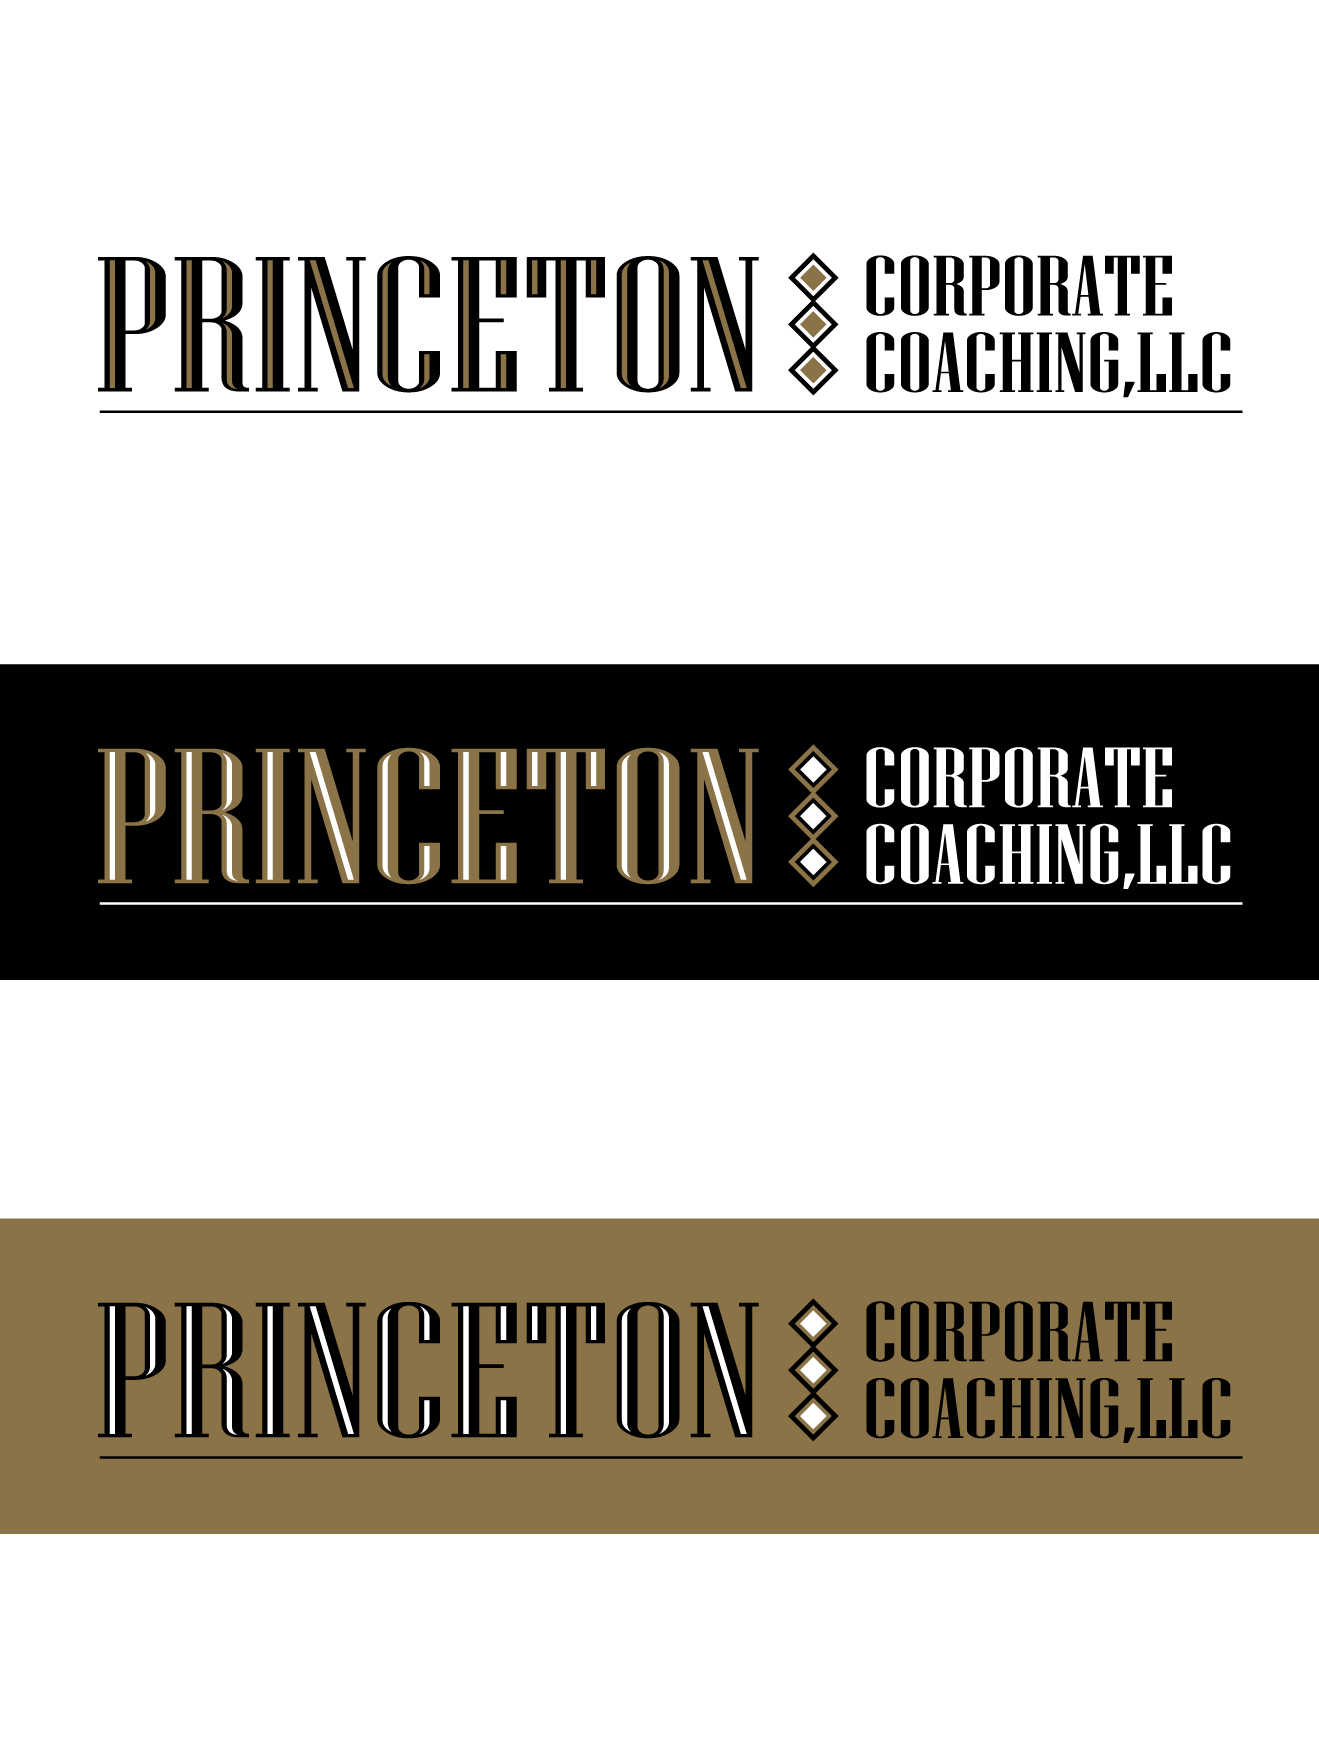 Logo Design by Wilfredo Mendoza - Entry No. 123 in the Logo Design Contest Unique Logo Design Wanted for Princeton Corporate Coaching, LLC.